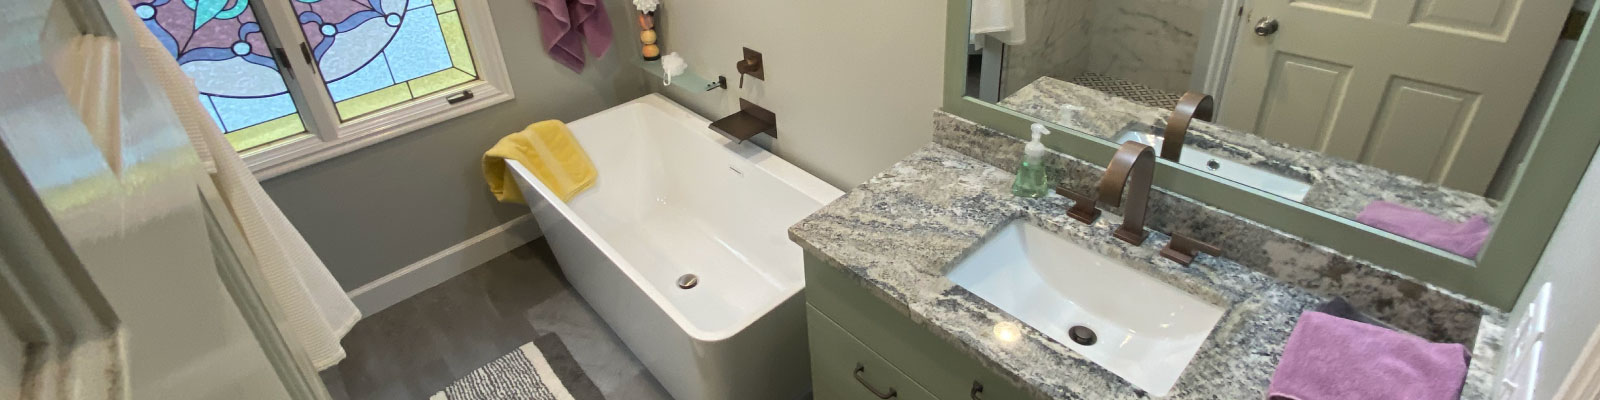 Bathroom Remodeling For Nashville Tennessee 48 Day Kitchen Bath Stunning Bathroom Remodeling Nashville